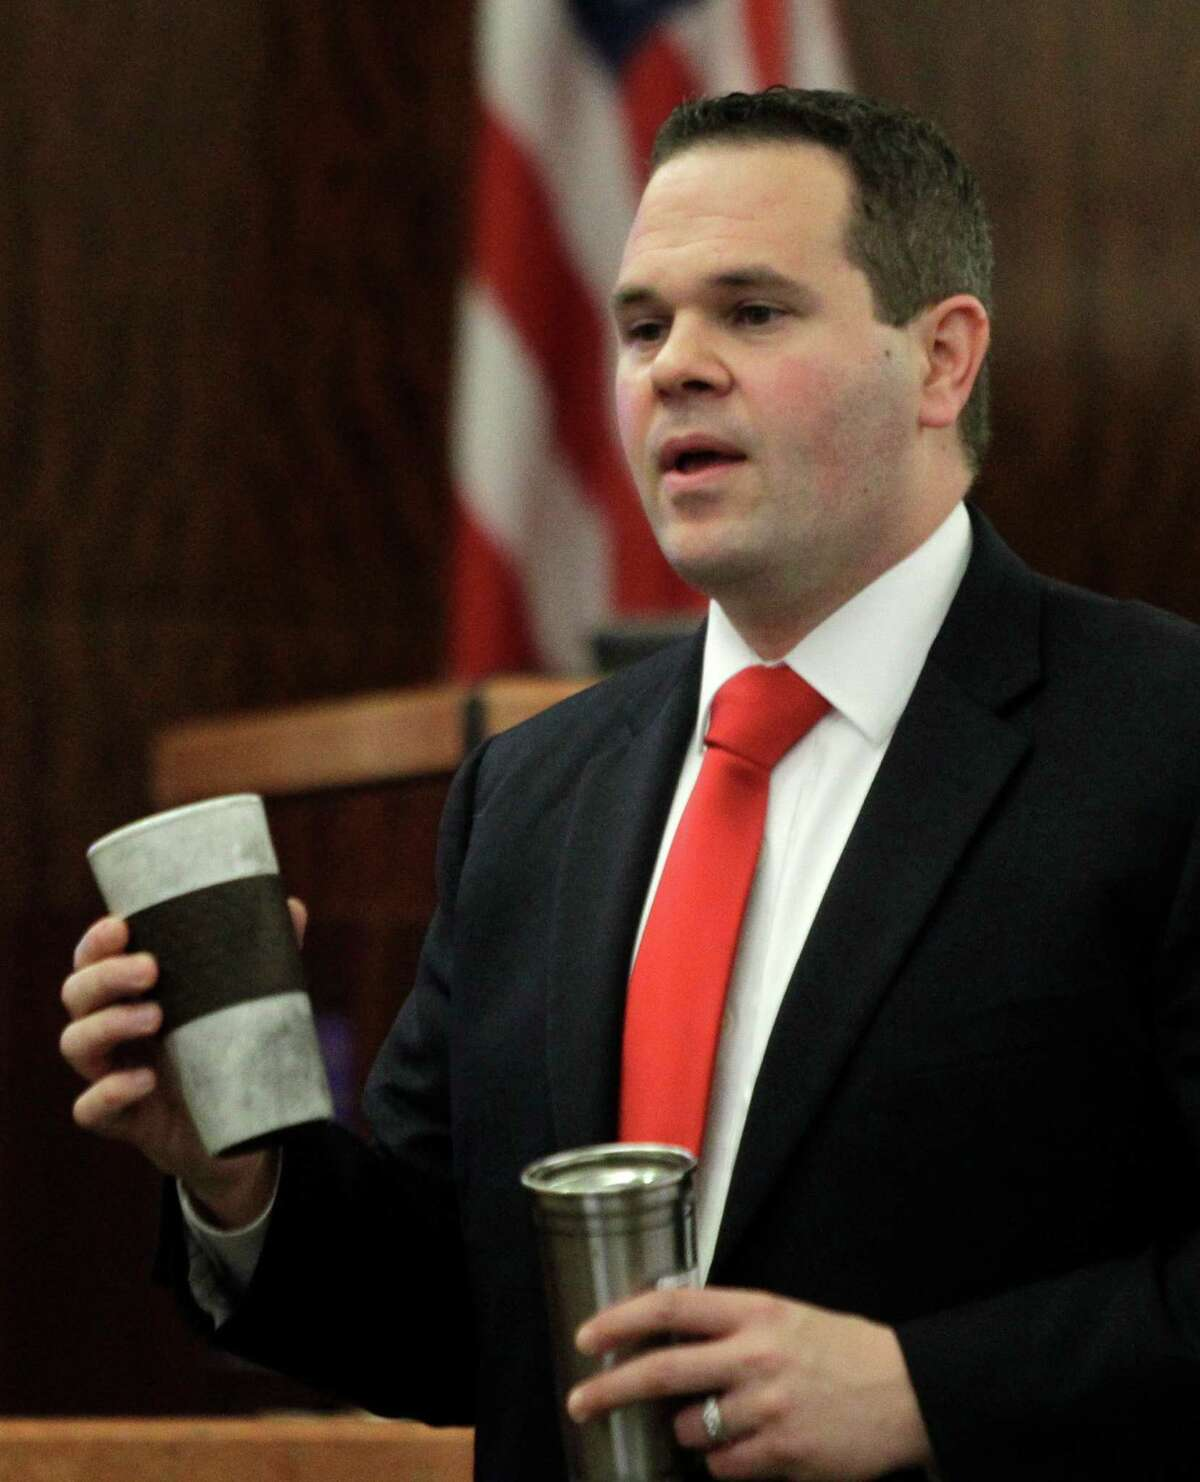 """Assistant District Attorney Justin Keiter holds up two coffee mugs during his closing arguments Wednesday. He said the defendant's guilt was """"in the details."""""""